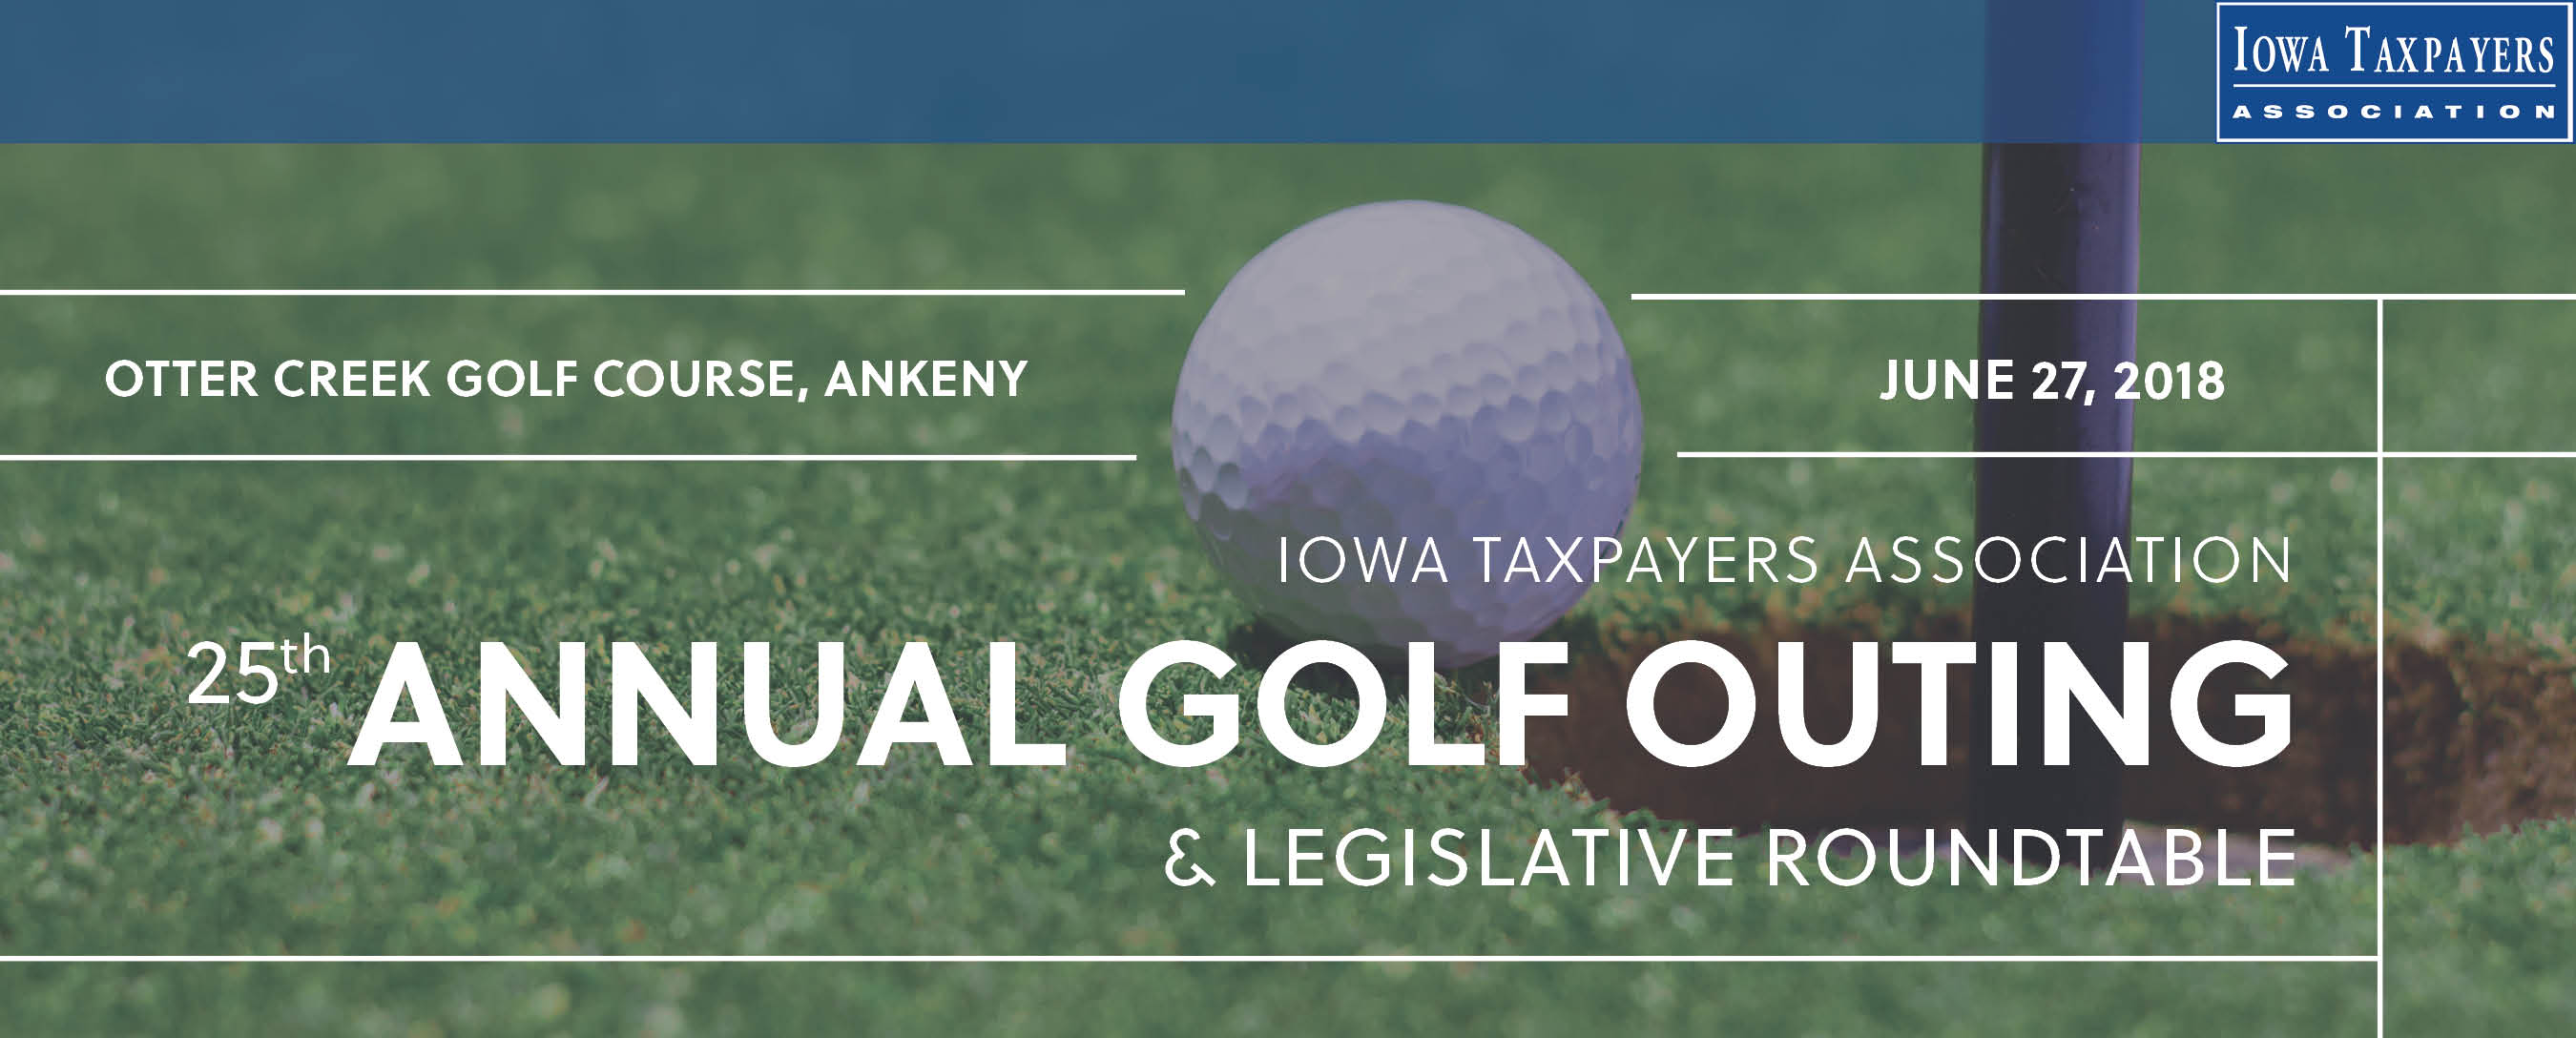 25th Annual Golf Outing & Legislative Roundtable